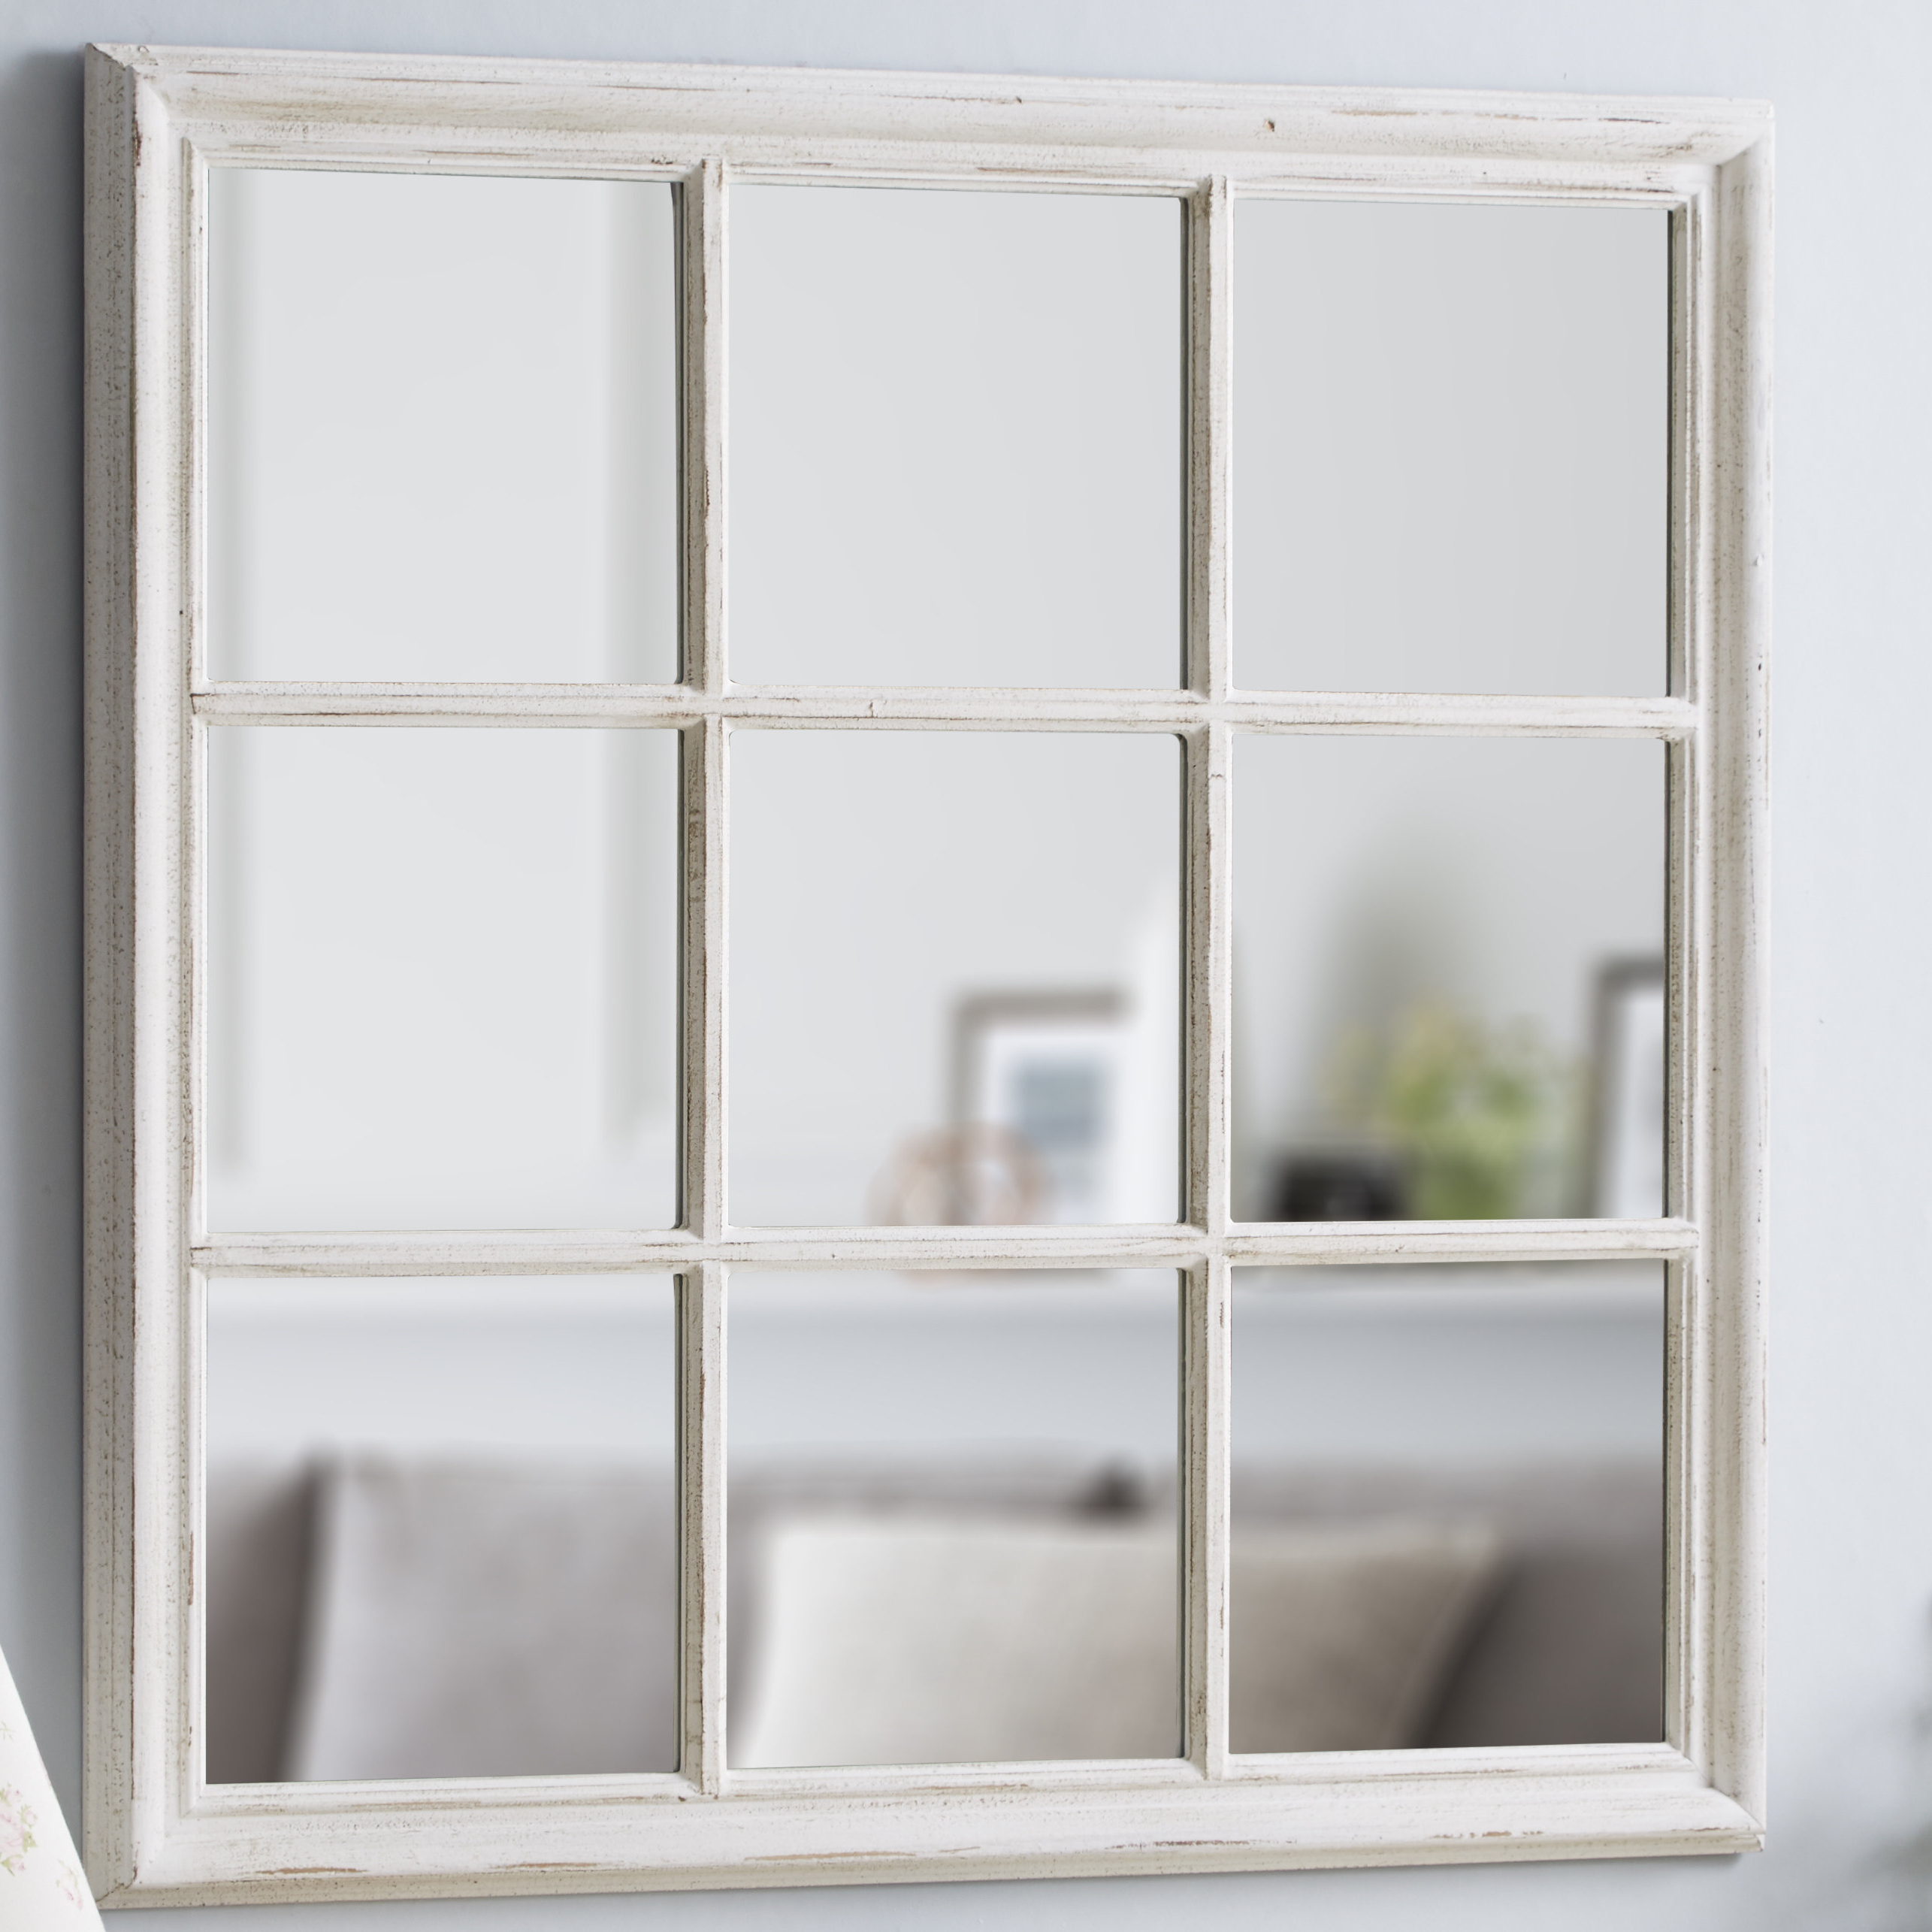 Square Window Wall Mirror Within Latest Large Square Wall Mirrors (View 16 of 20)